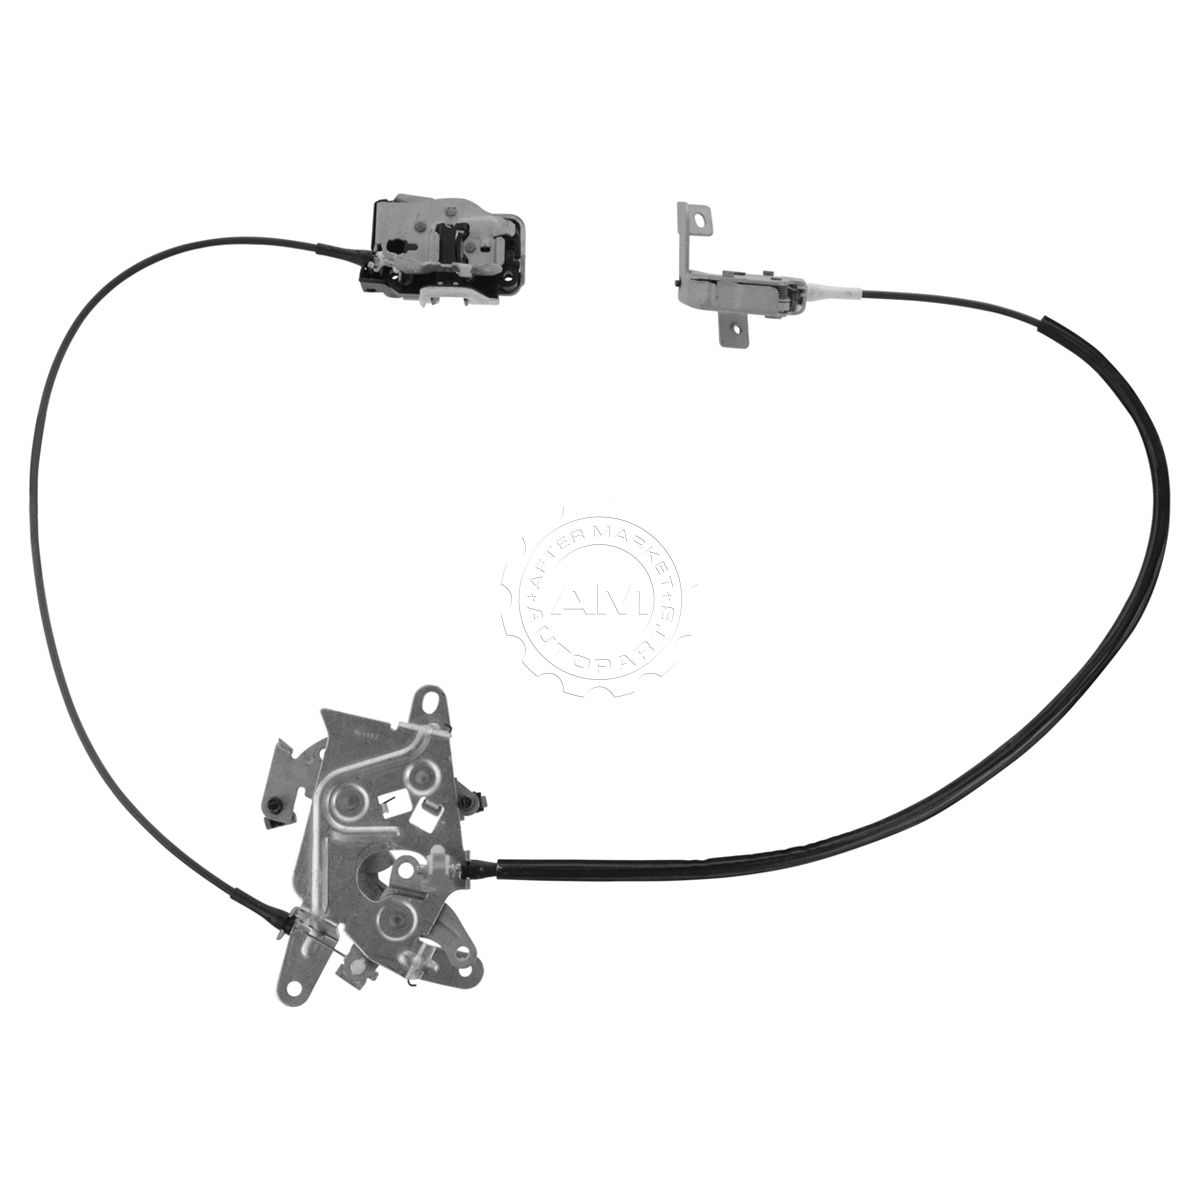 Details About Oem 6c3z28264a01a Door Latch Cable Assembly Lh Driver Rear For Ford Super Duty